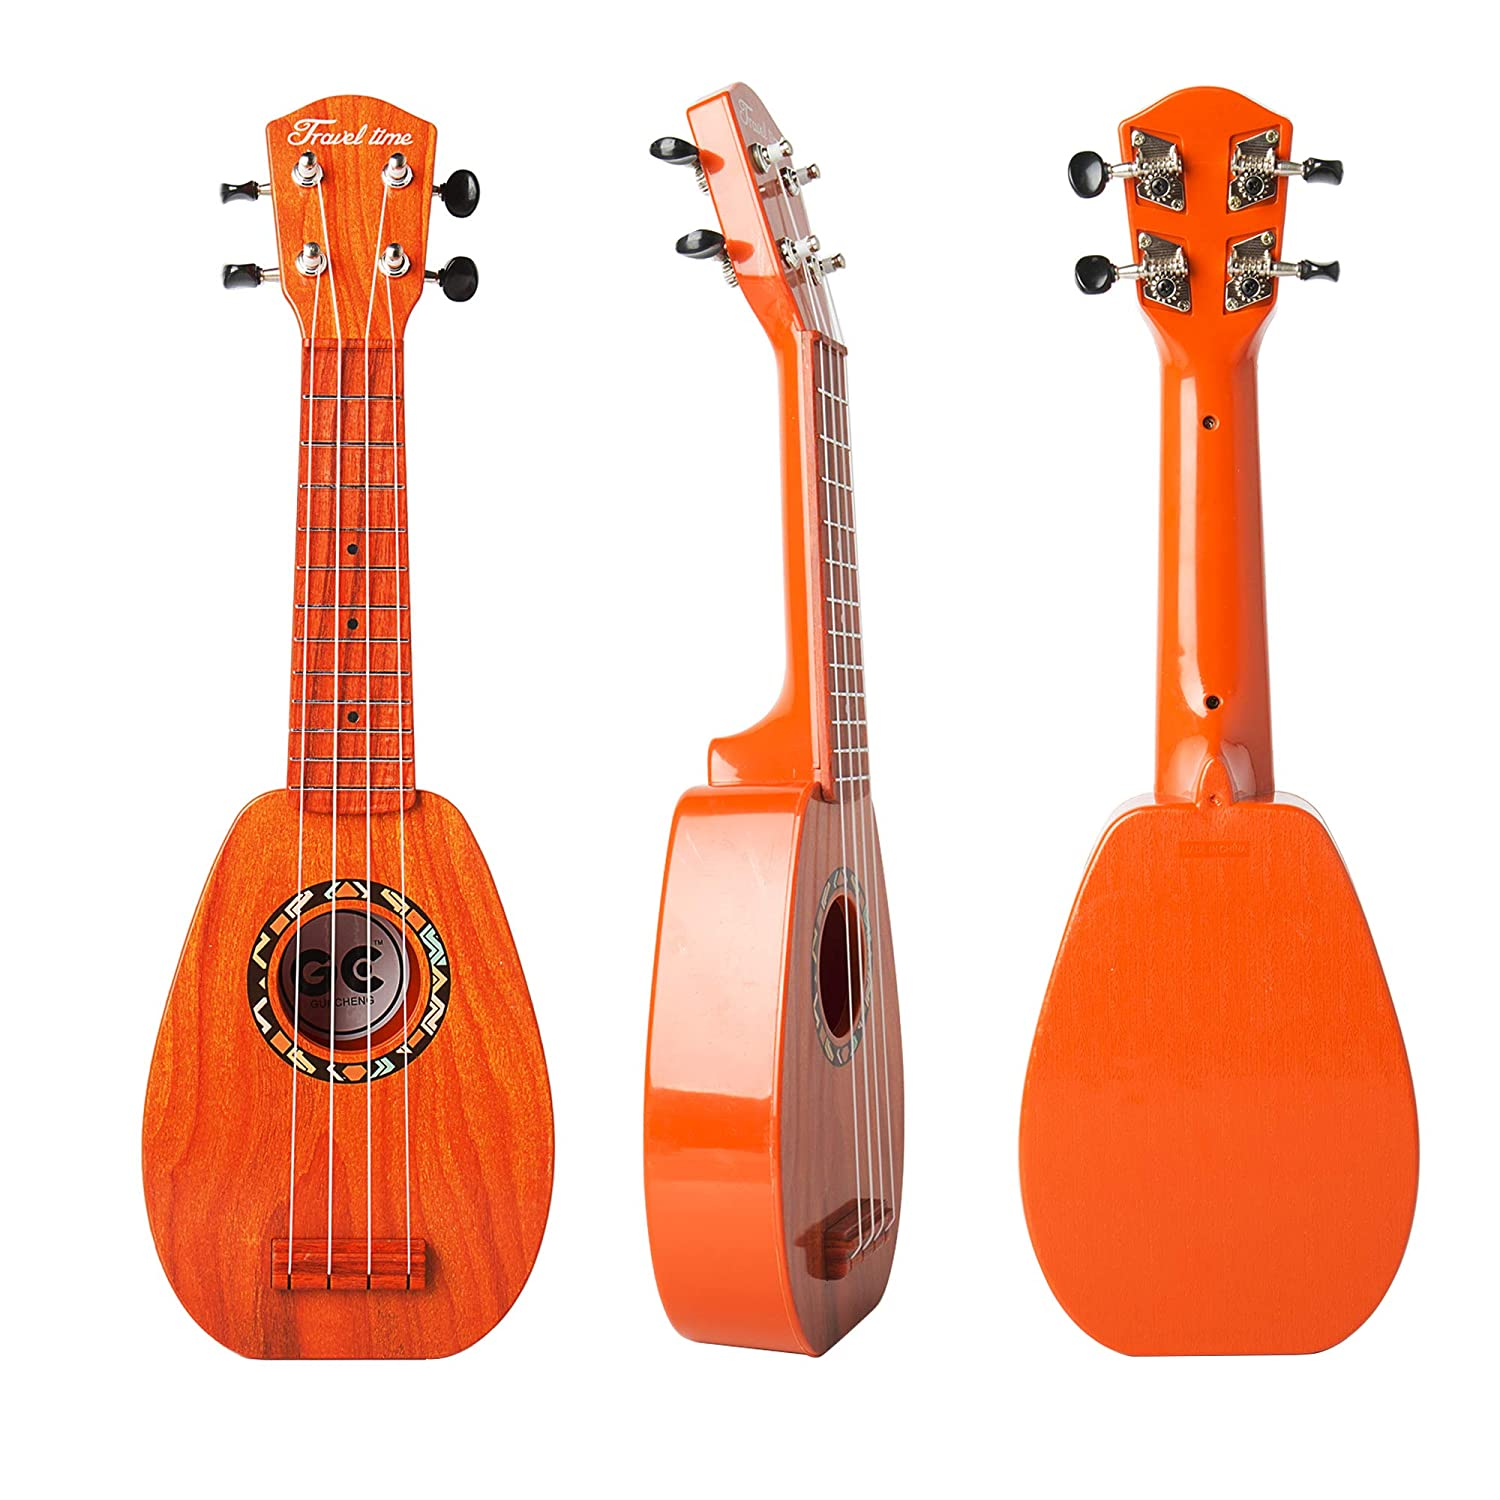 17 Inch Mini Guitar Ukulele Toy For Kids,Guitar Children Educational Learn Guitar Ukulele With the Picks and Strap Can Play Musical Instruments Toys (17 Inch Ukulele-2)